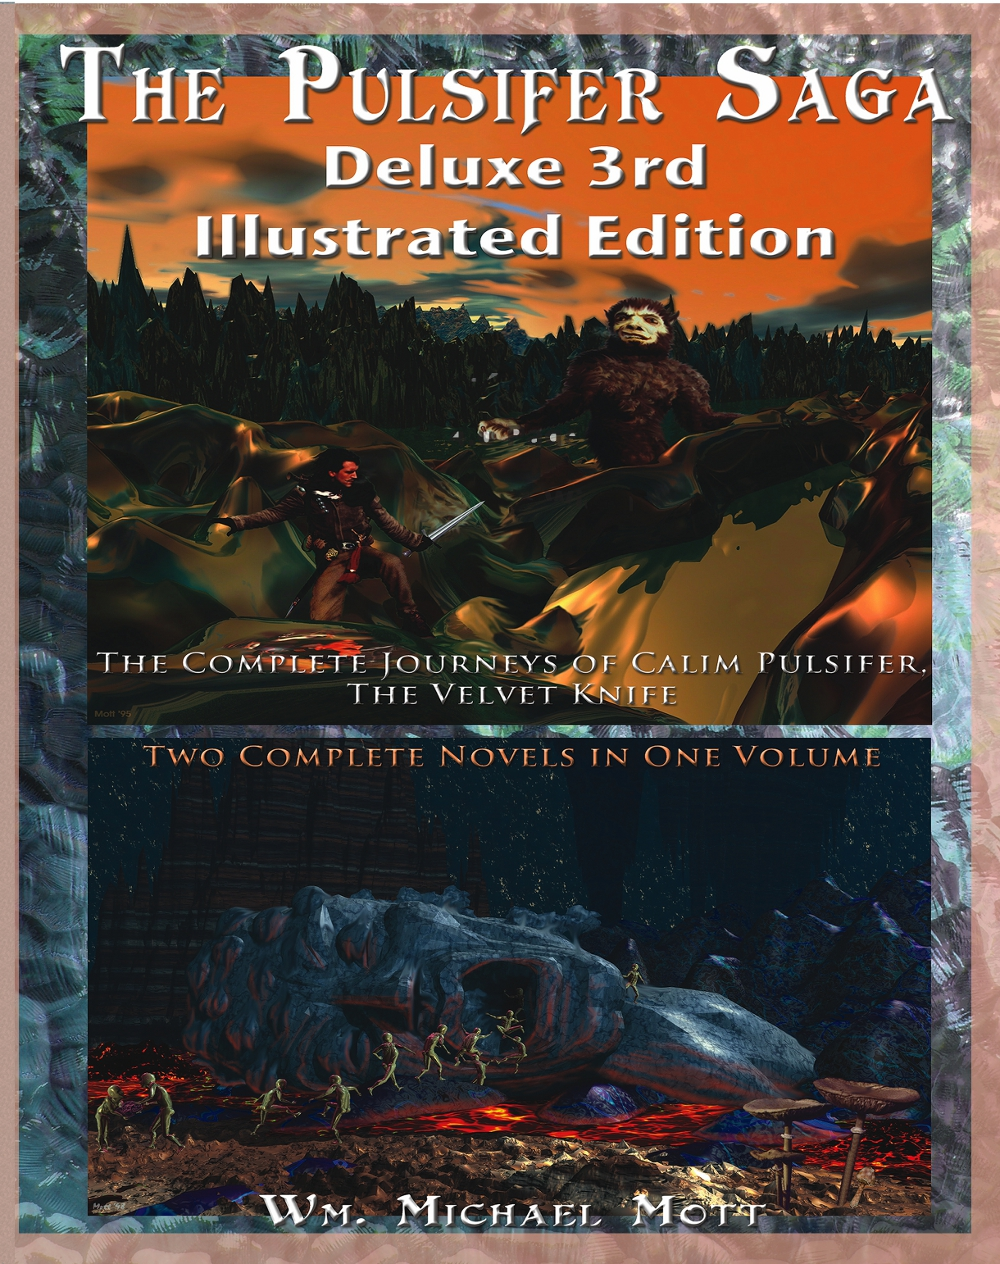 The Pulsifer Saga: Third Deluxe Illustrated Edition